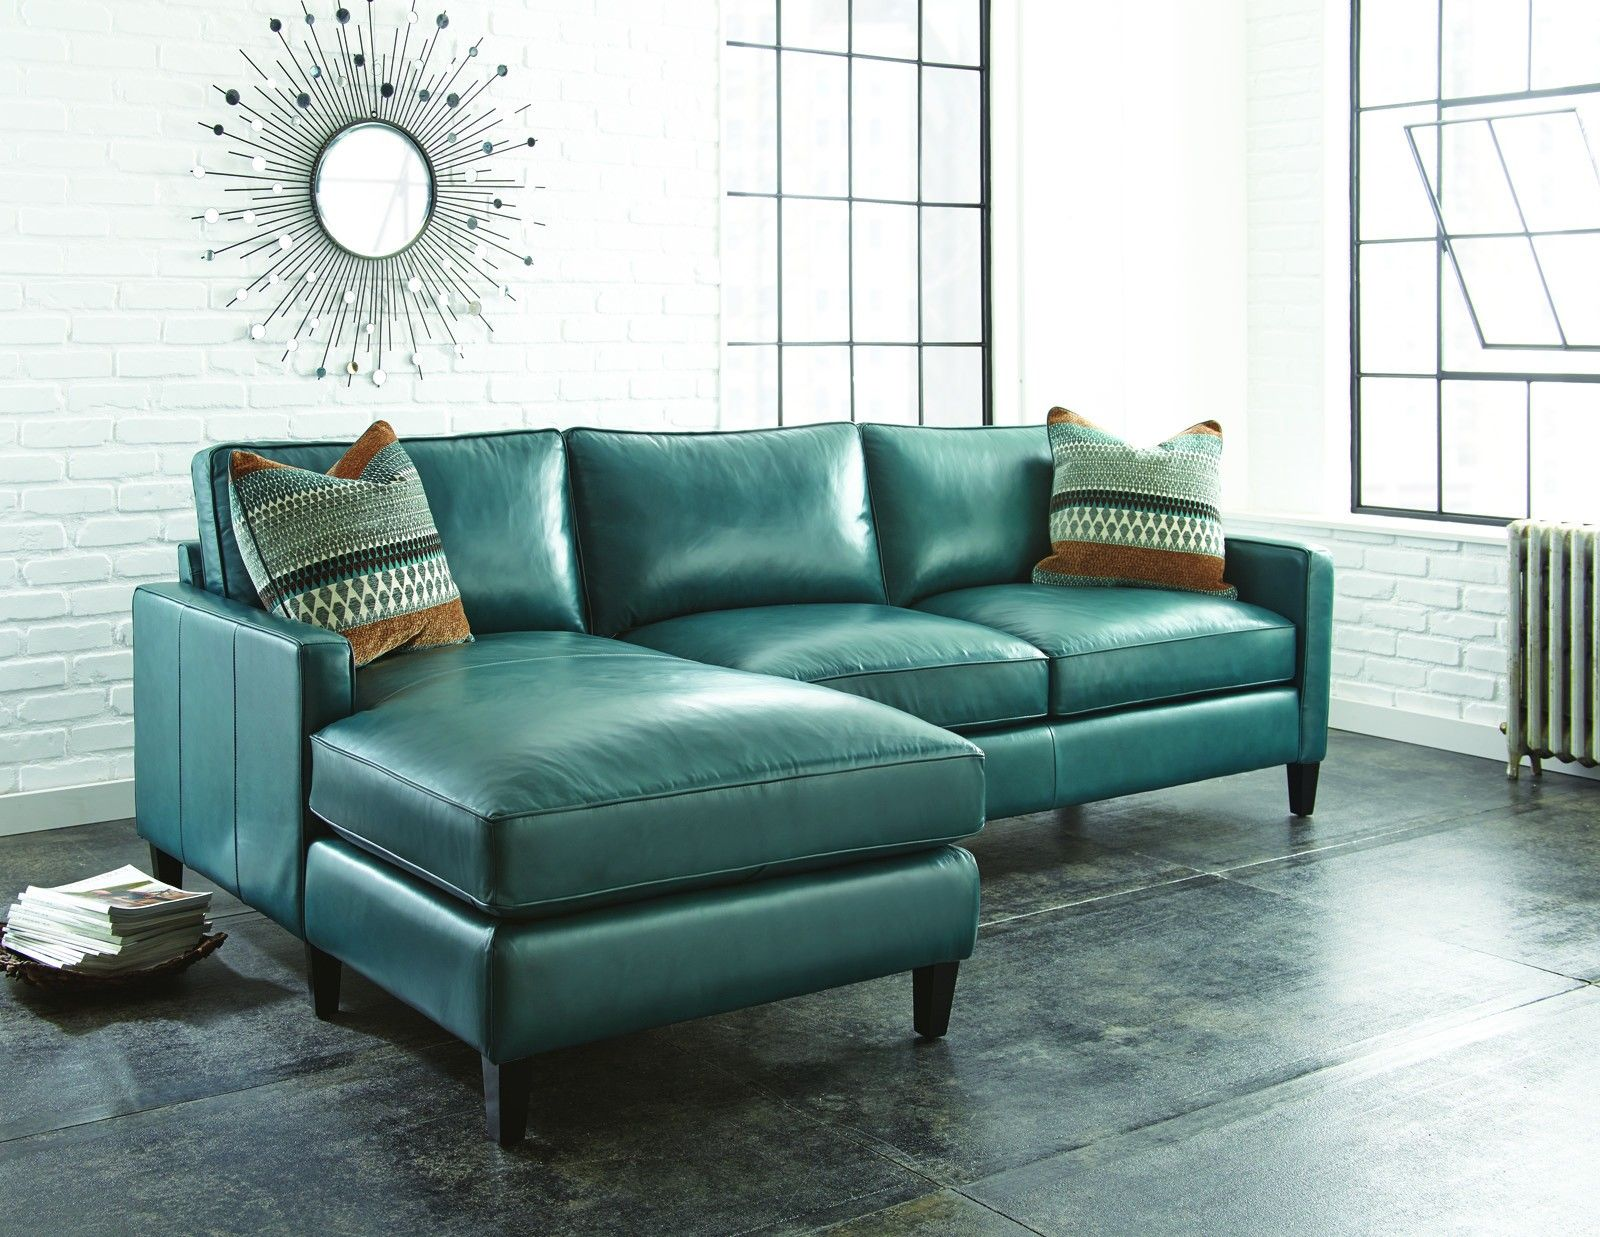 Nice Teal Leather Chair Luxury